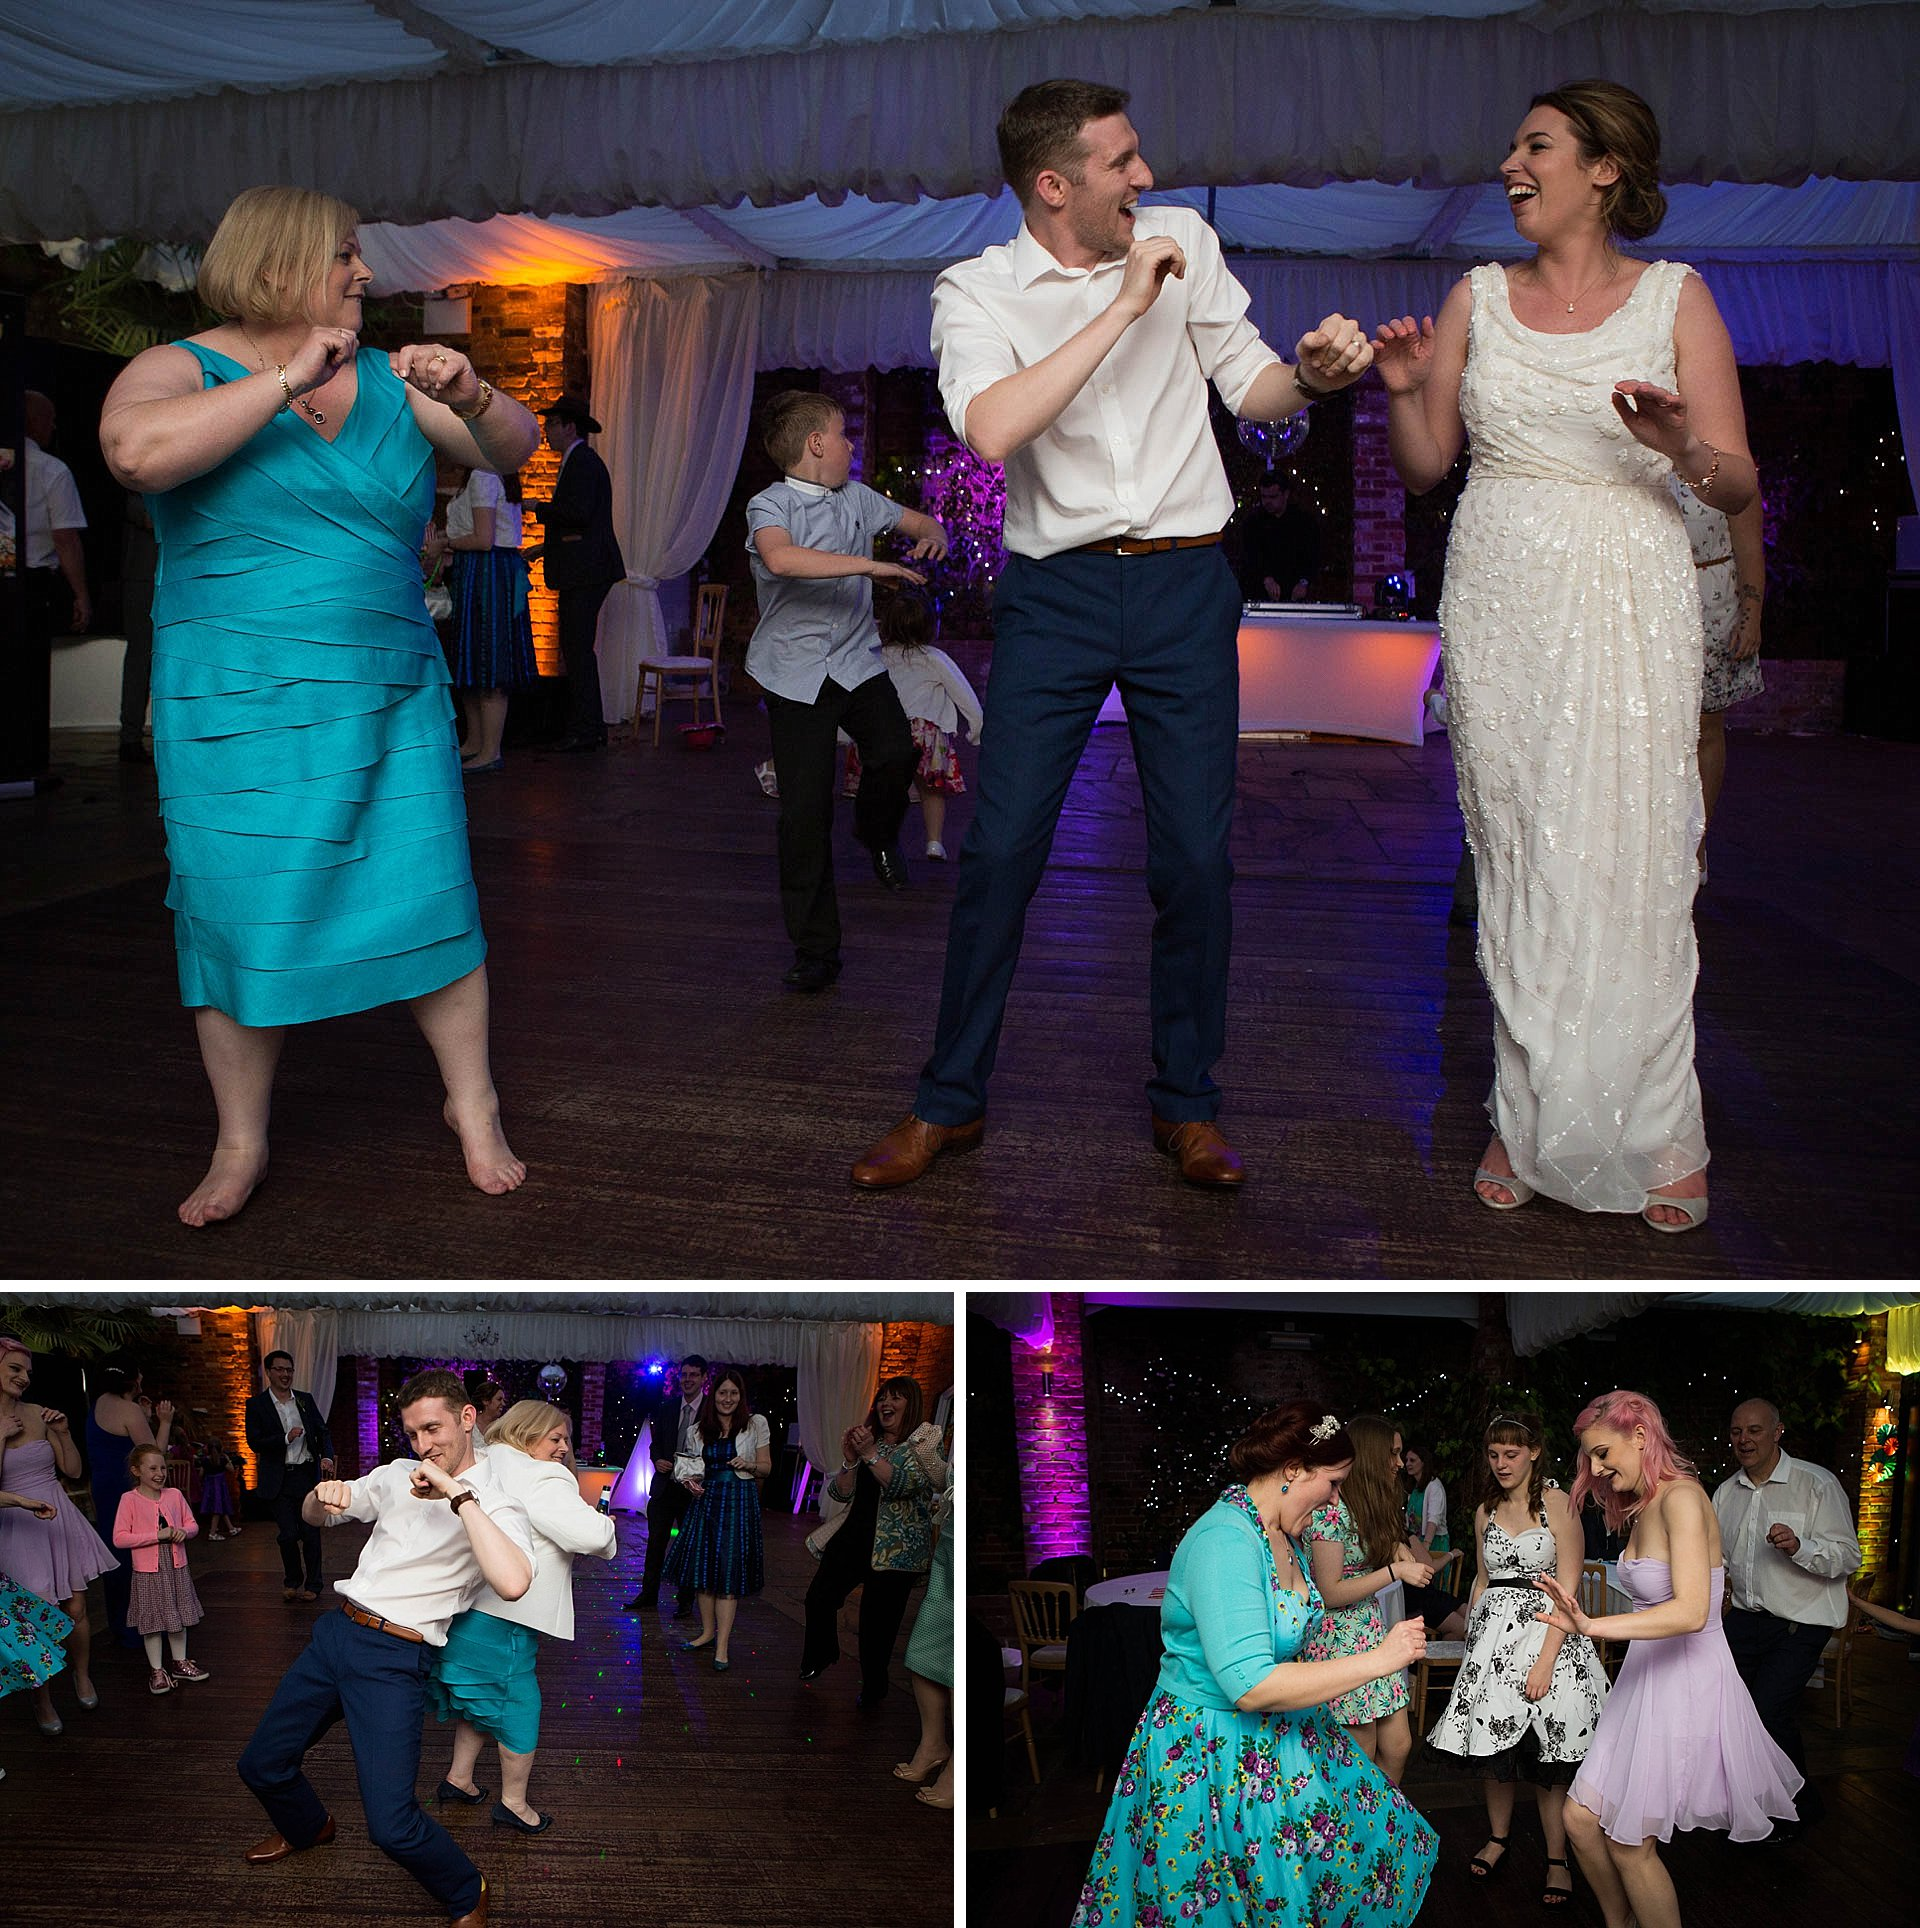 Surrey wedding photography - dancing